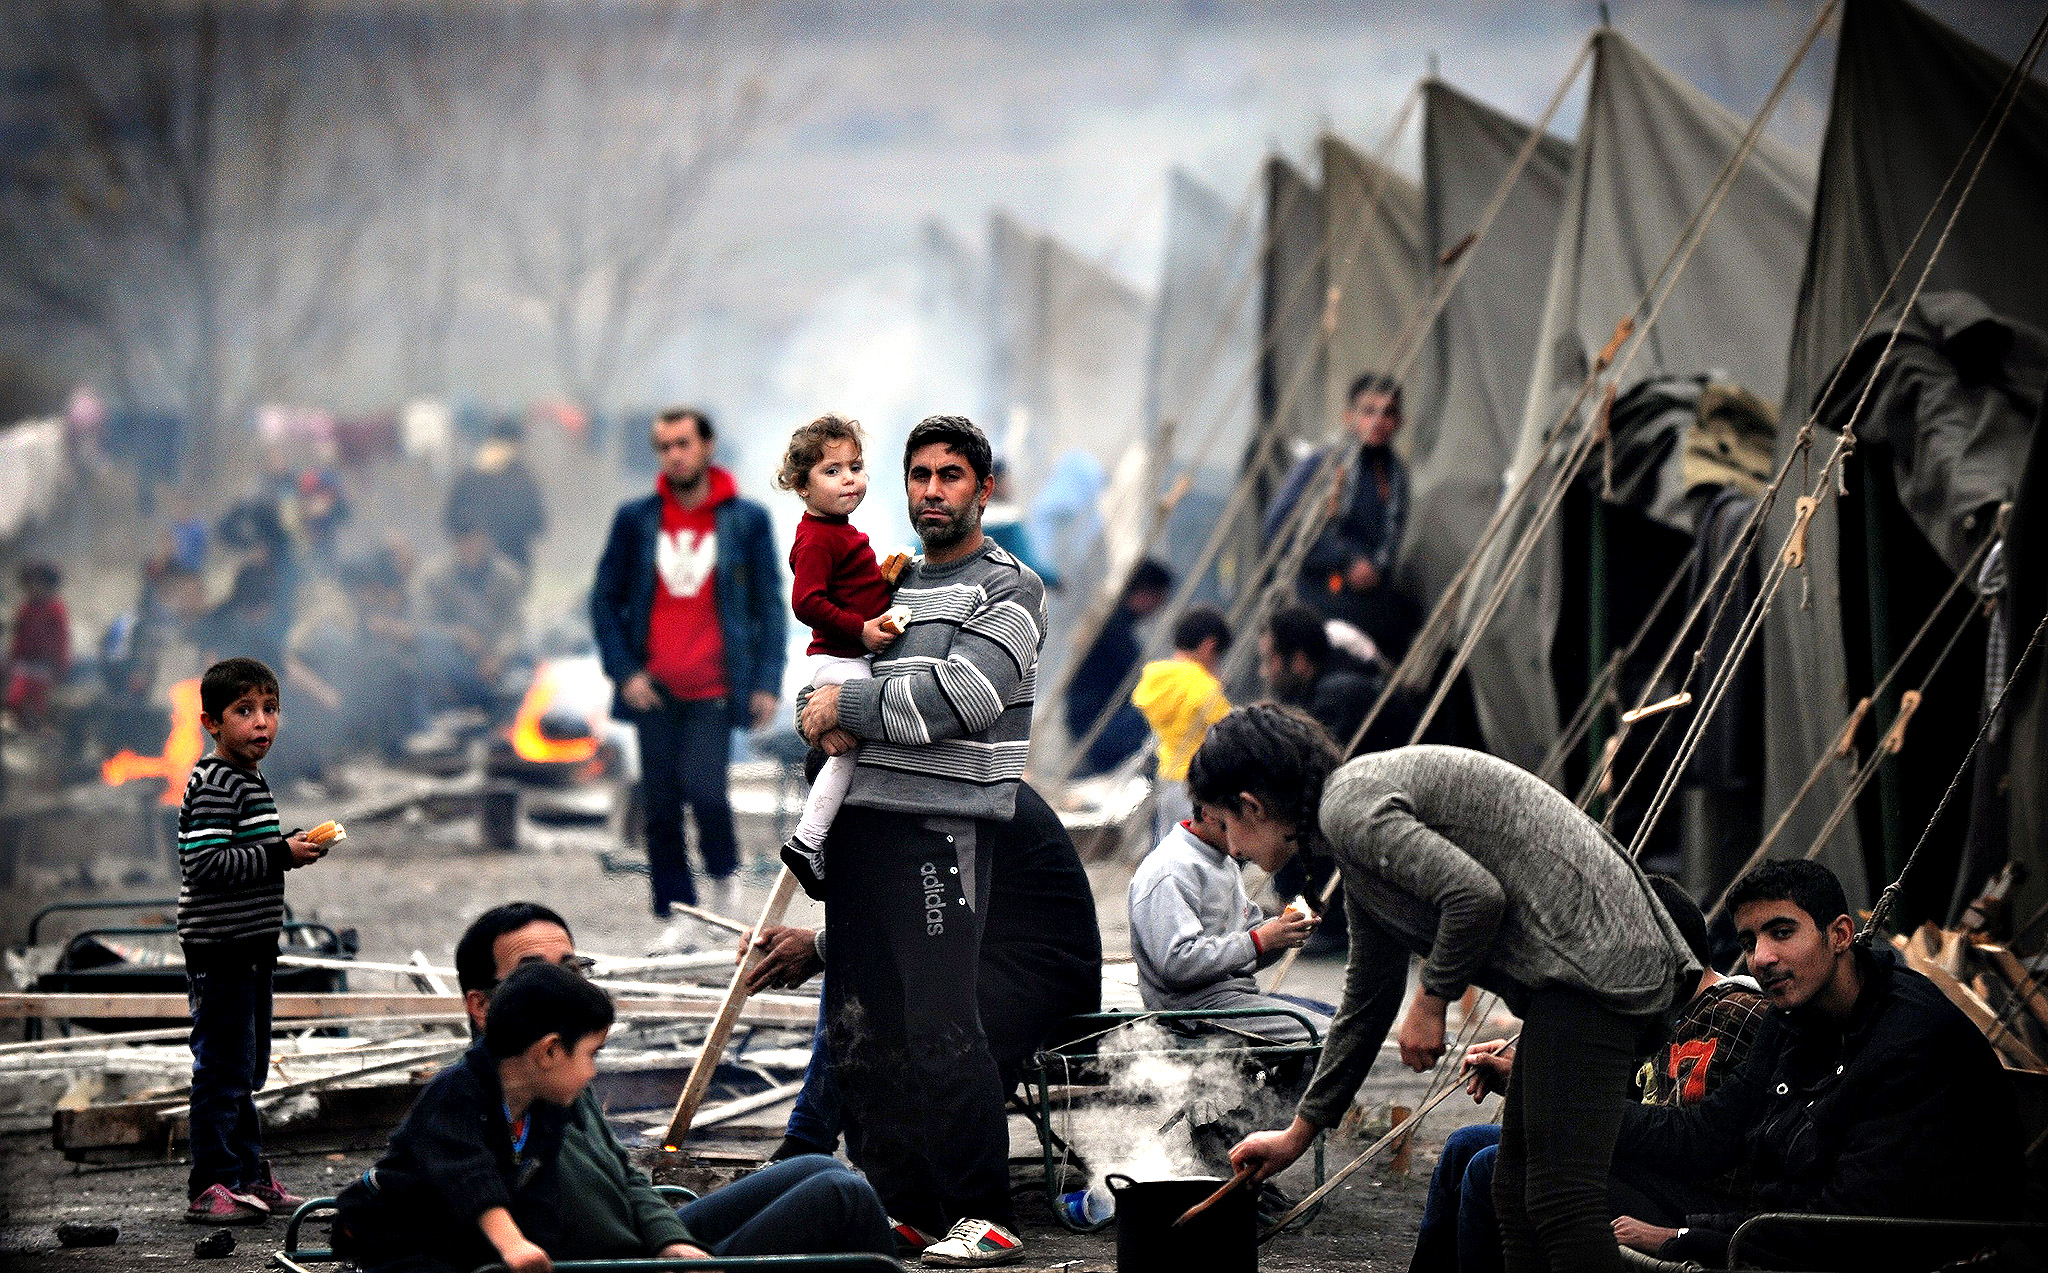 Lebanese security authorities: 500 Syrian refugees on way back home